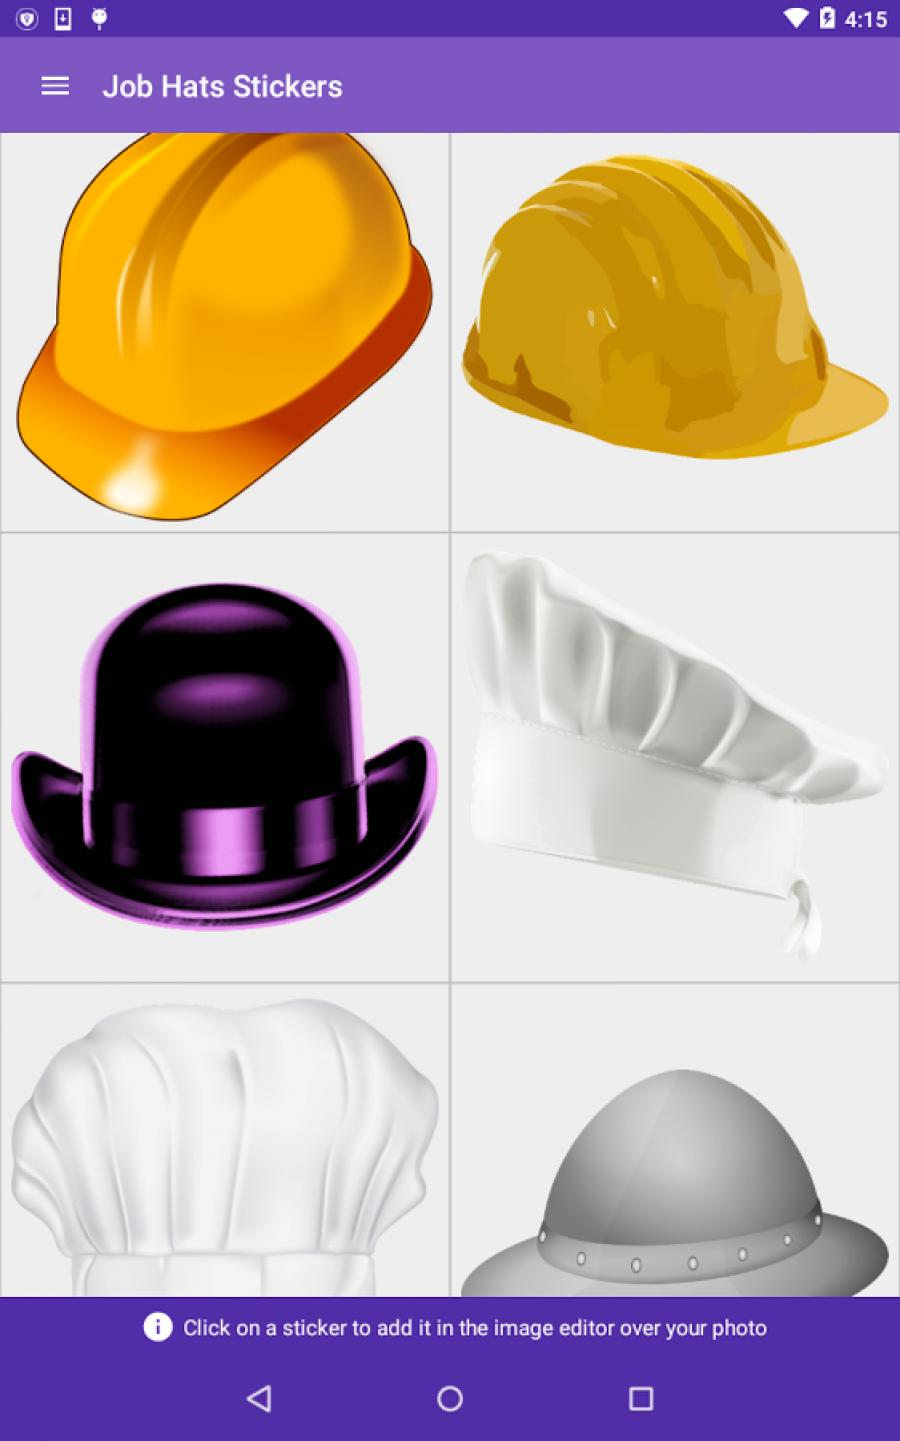 Job Hats Stickers